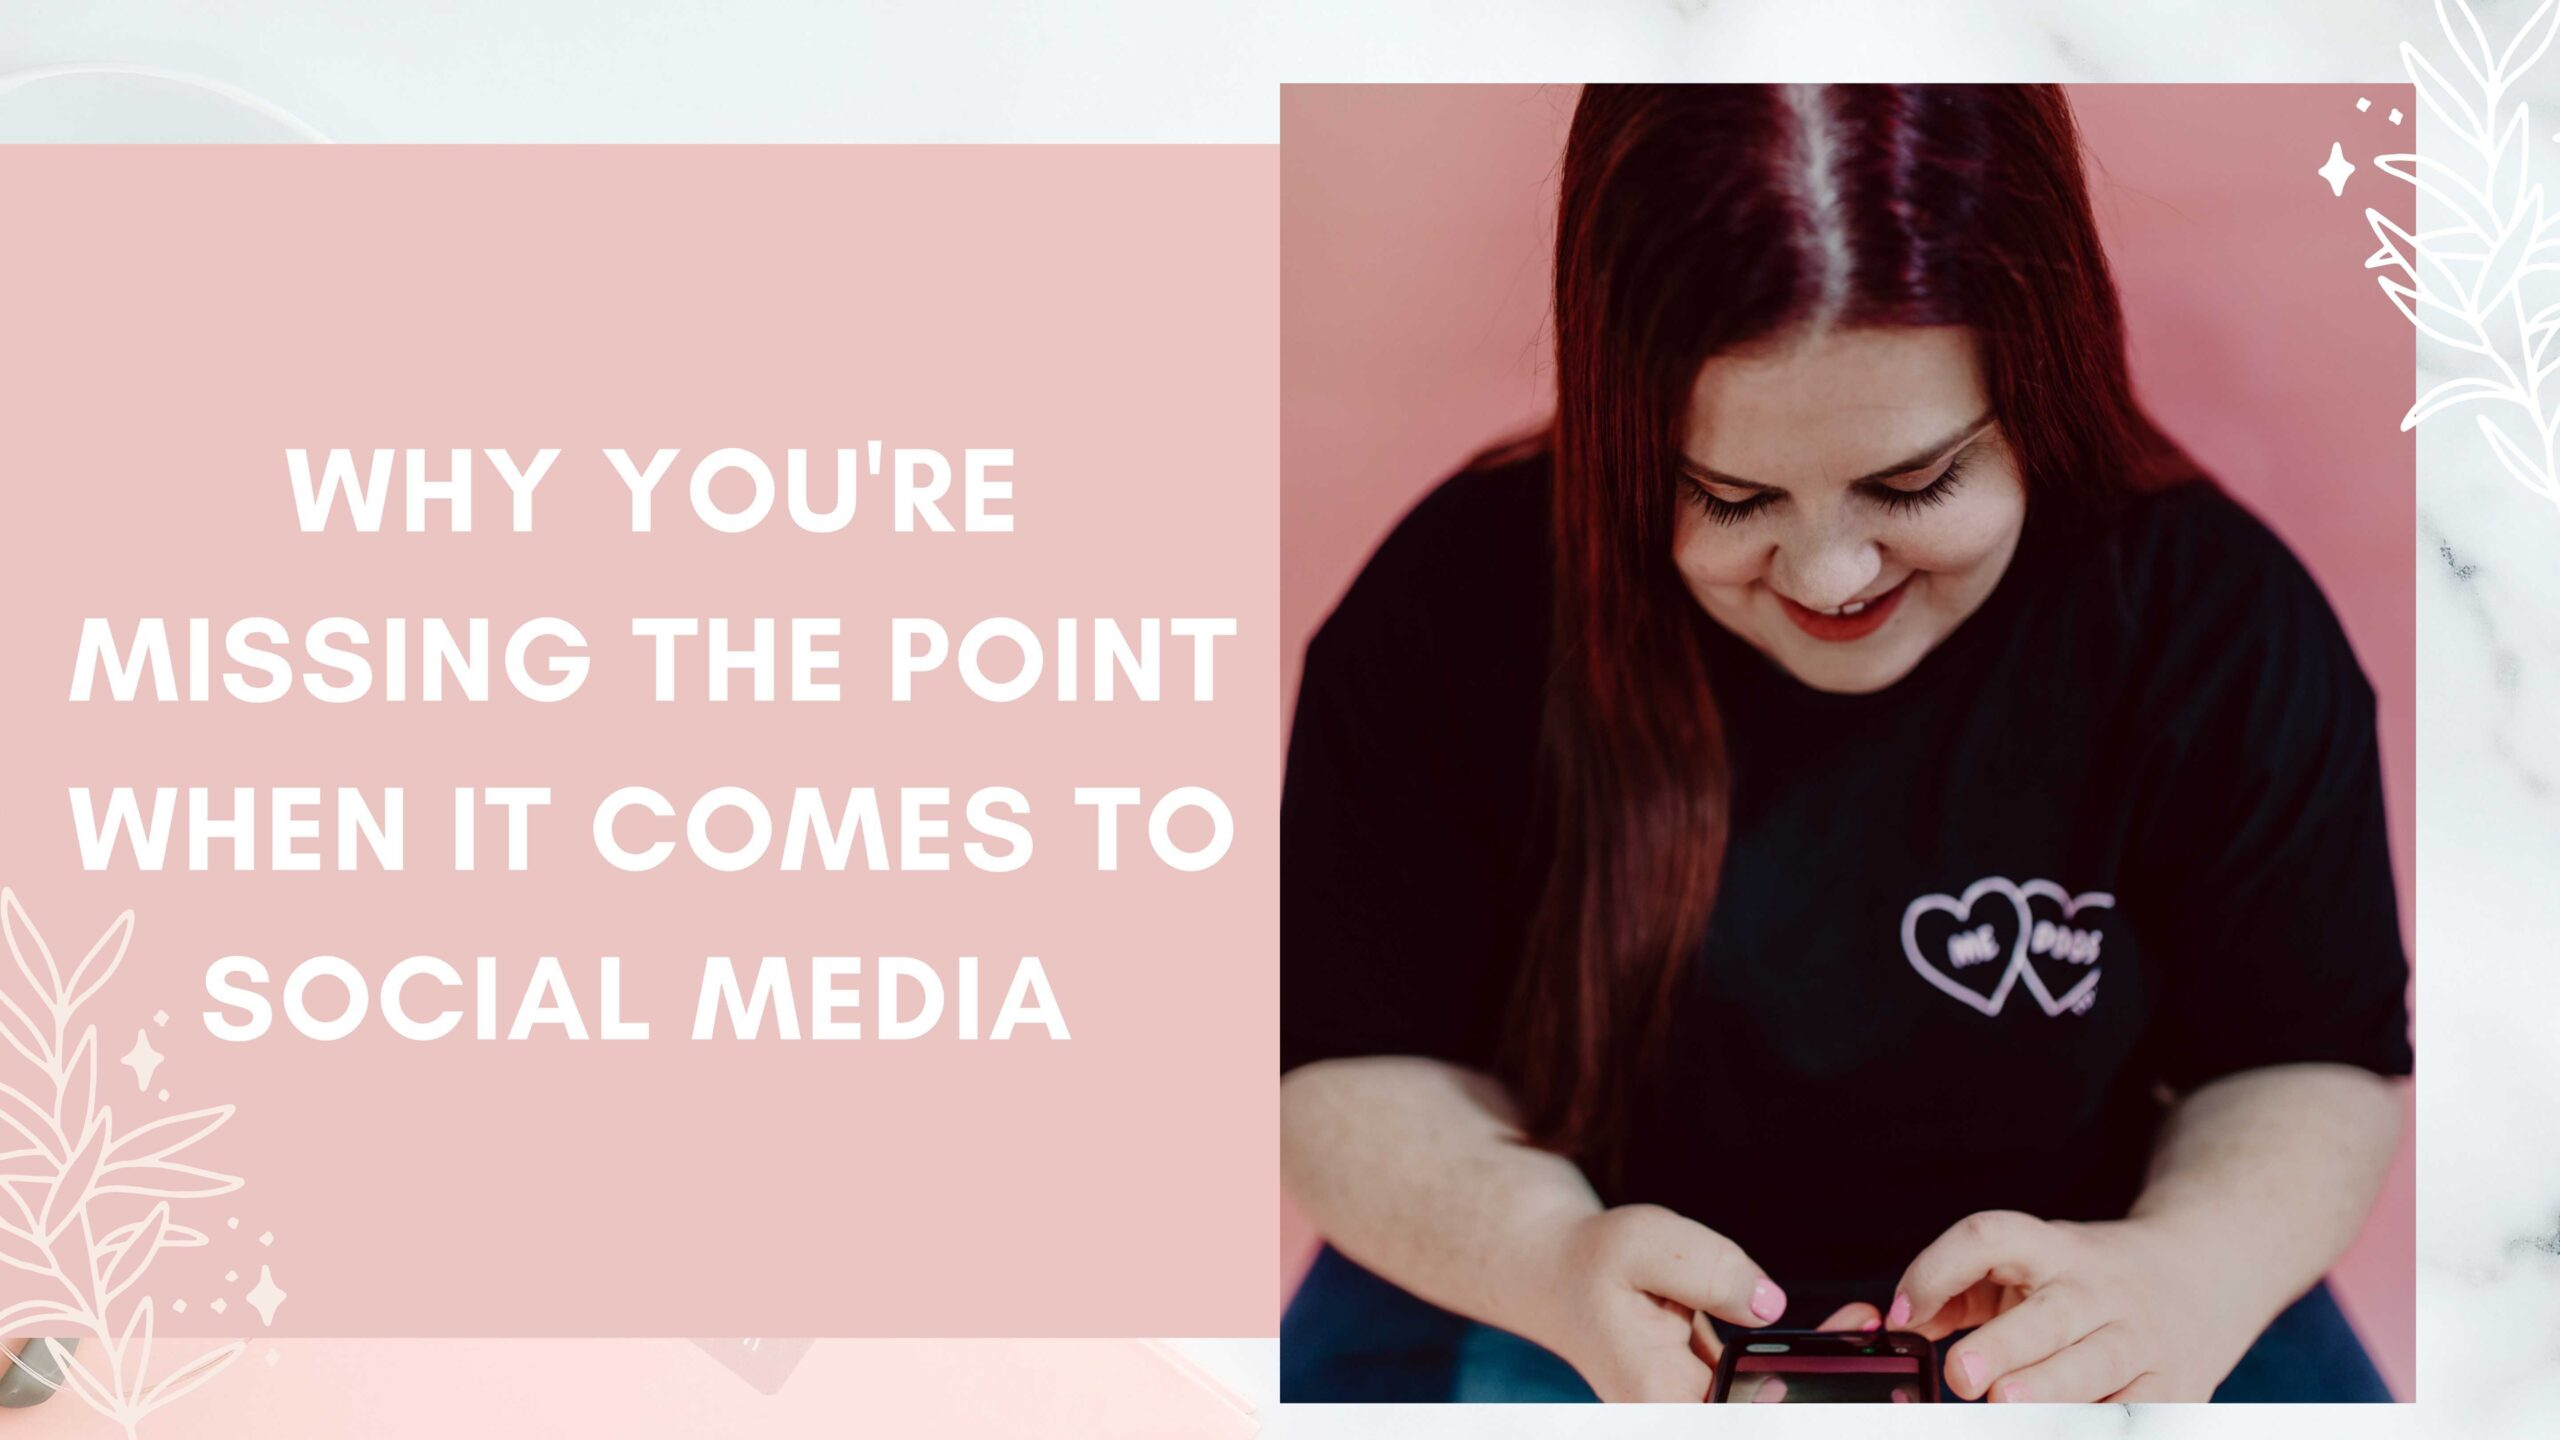 why-youre-missing-the-point-when-it-comes-to-social-media-header-image